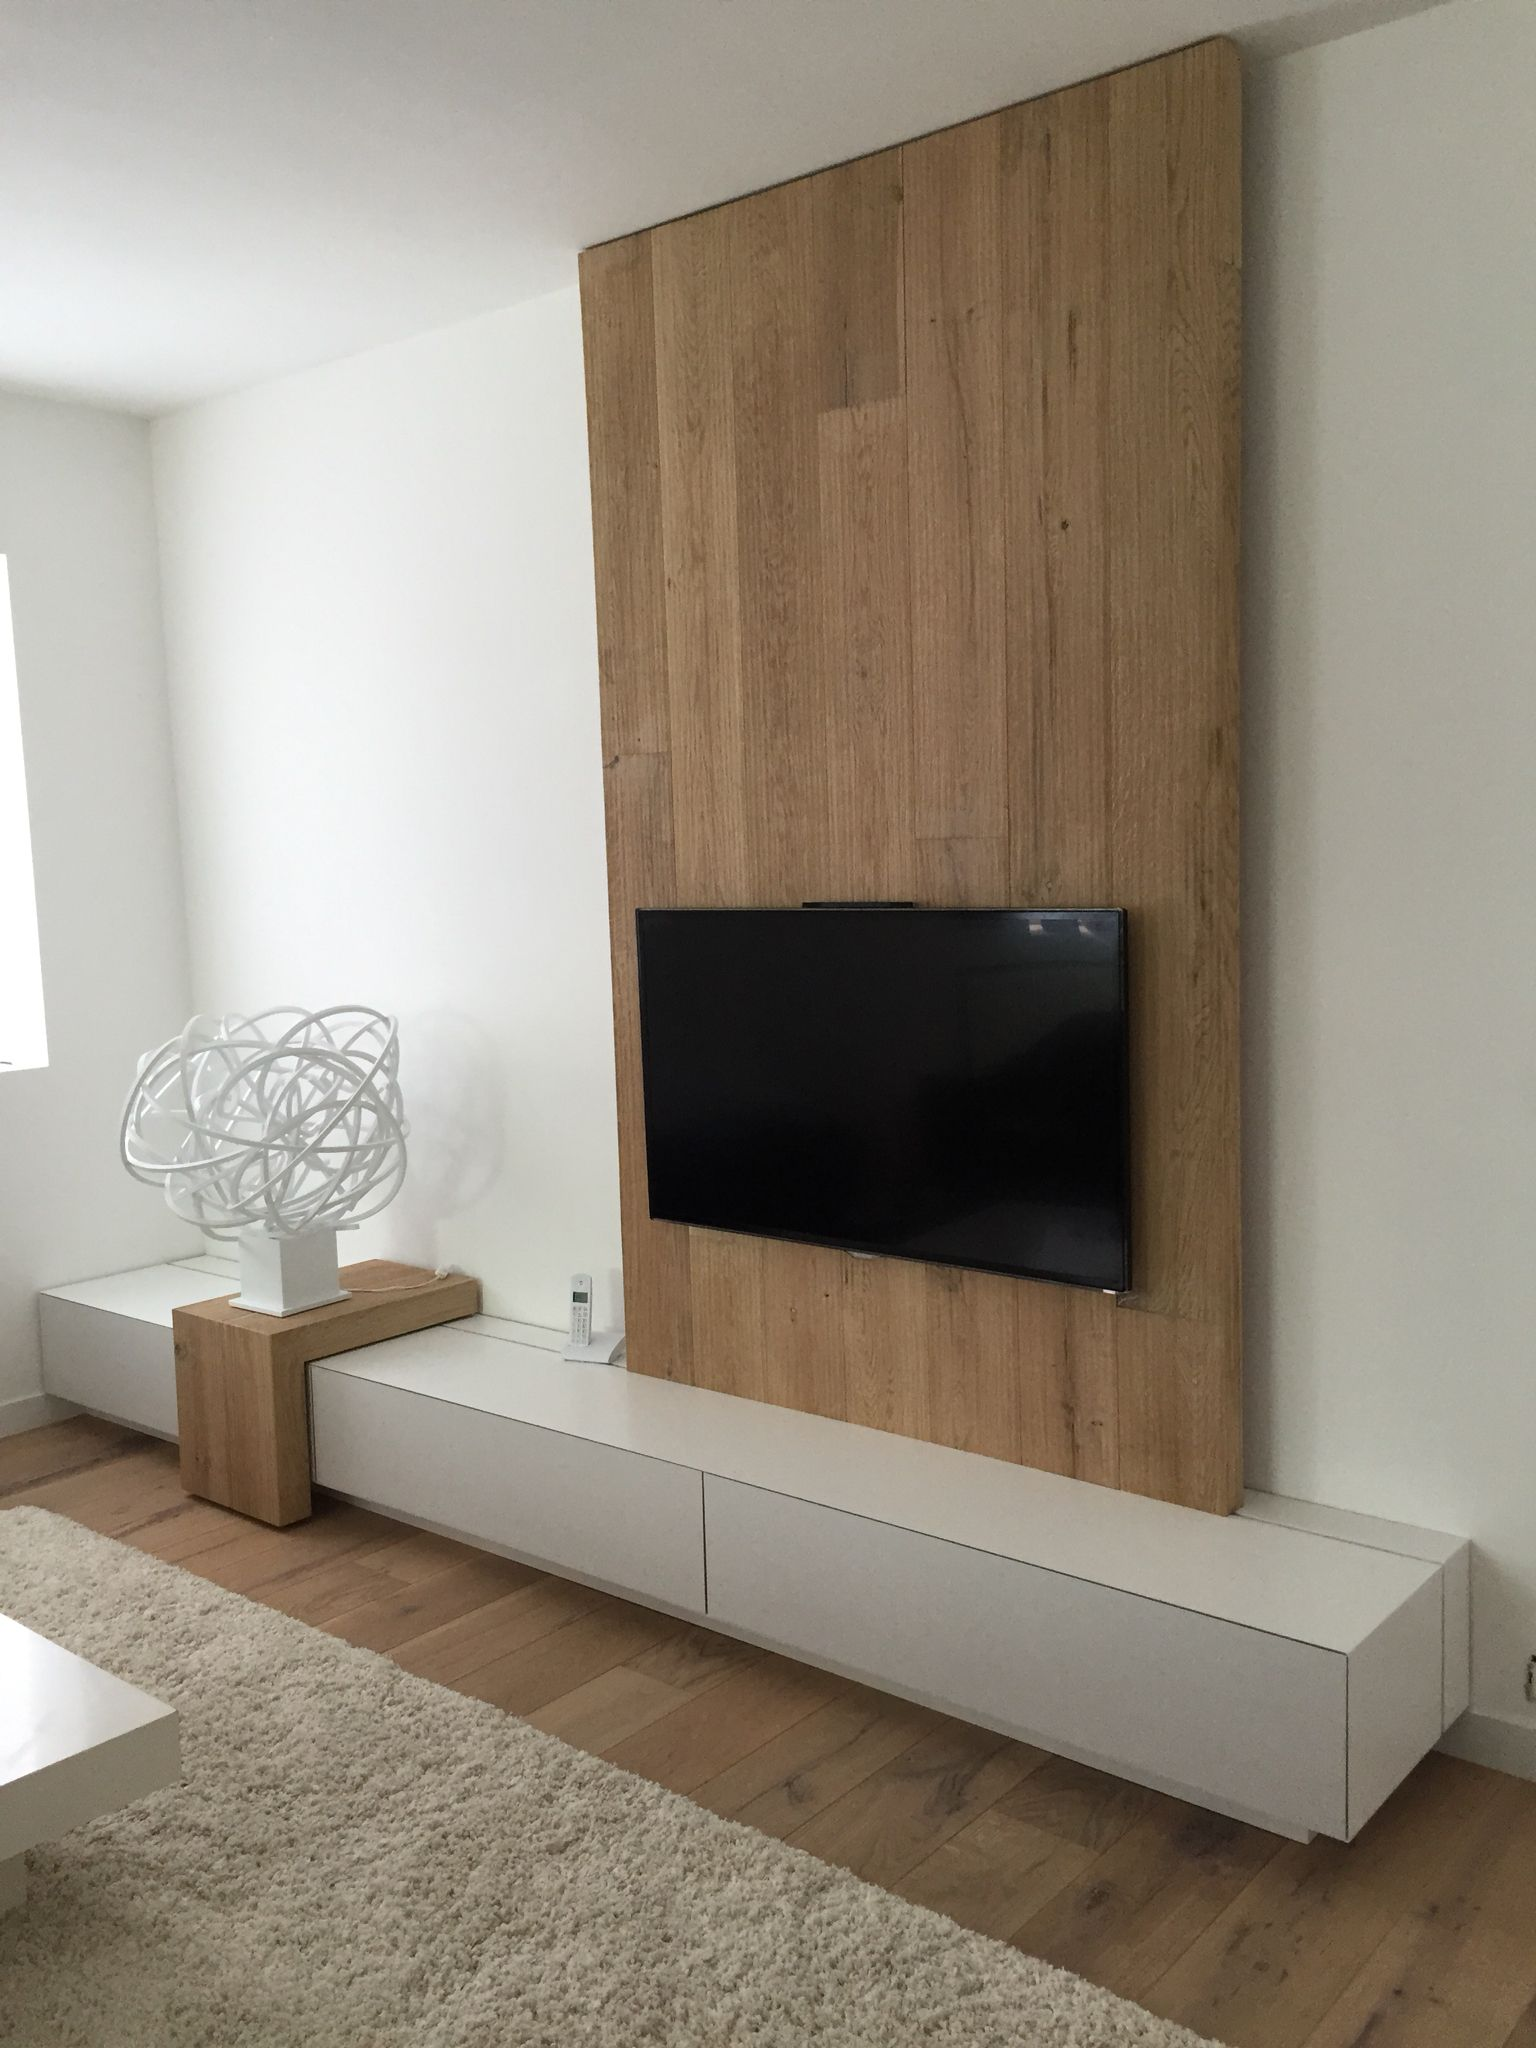 Meuble Tv Laqu Blanc Et Ch Ne Bross Www Woodline Concept Com  # Le Corner Meuble Tv Blanc Led Hi Fi Integre